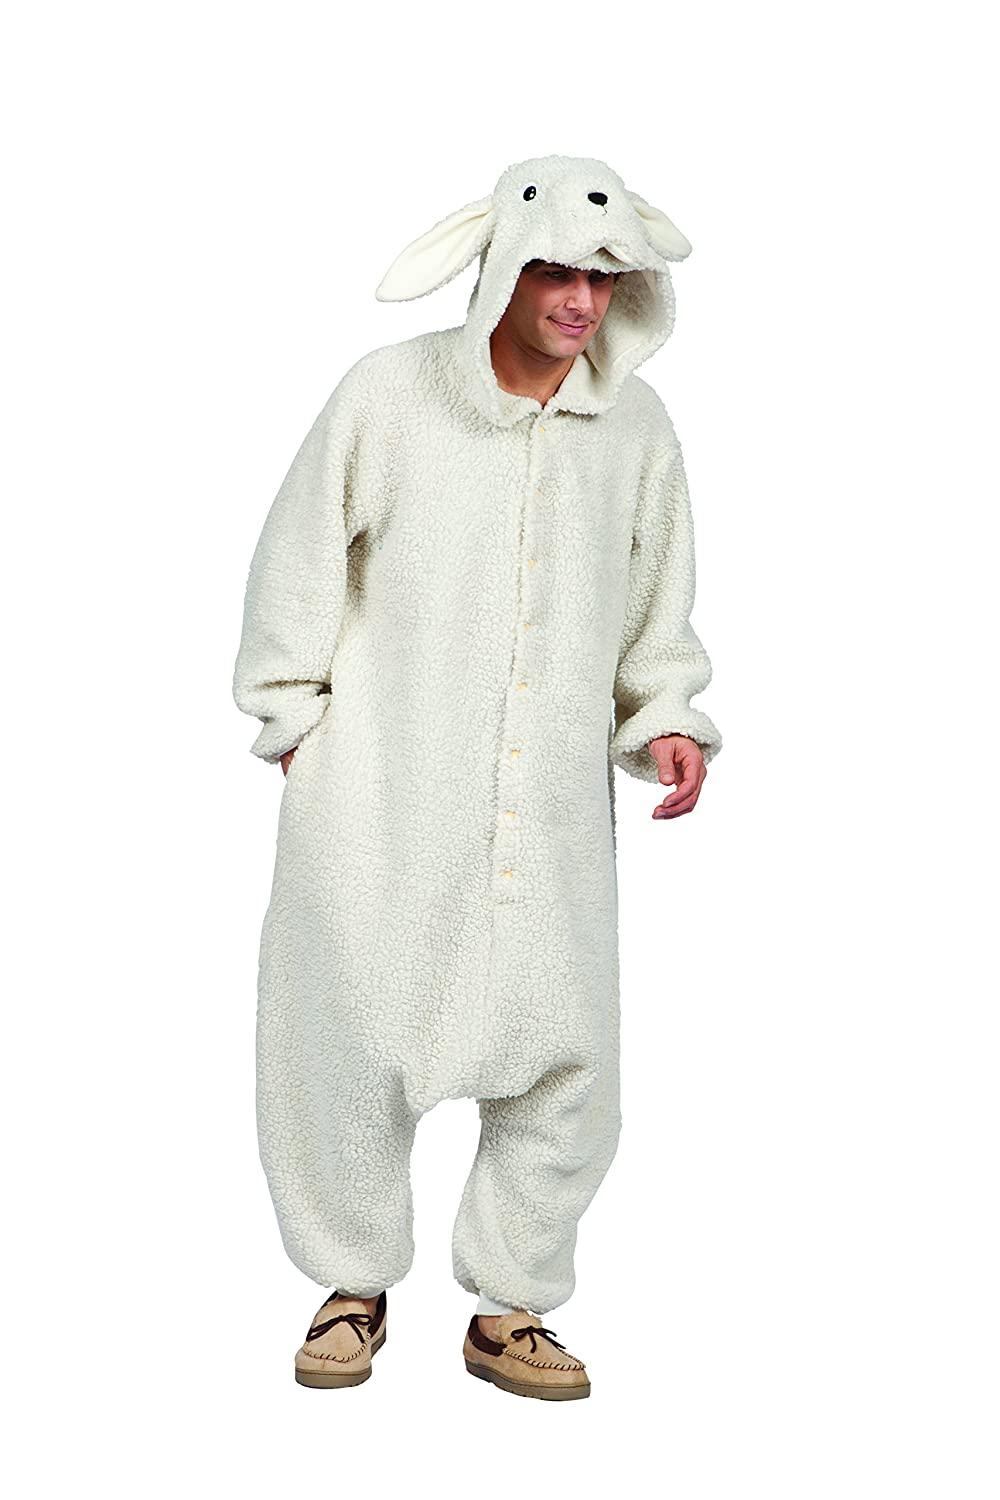 RG Costumes Men's Ollie The Sheep RG Costumes Ollie The Sheep White One Size 40085